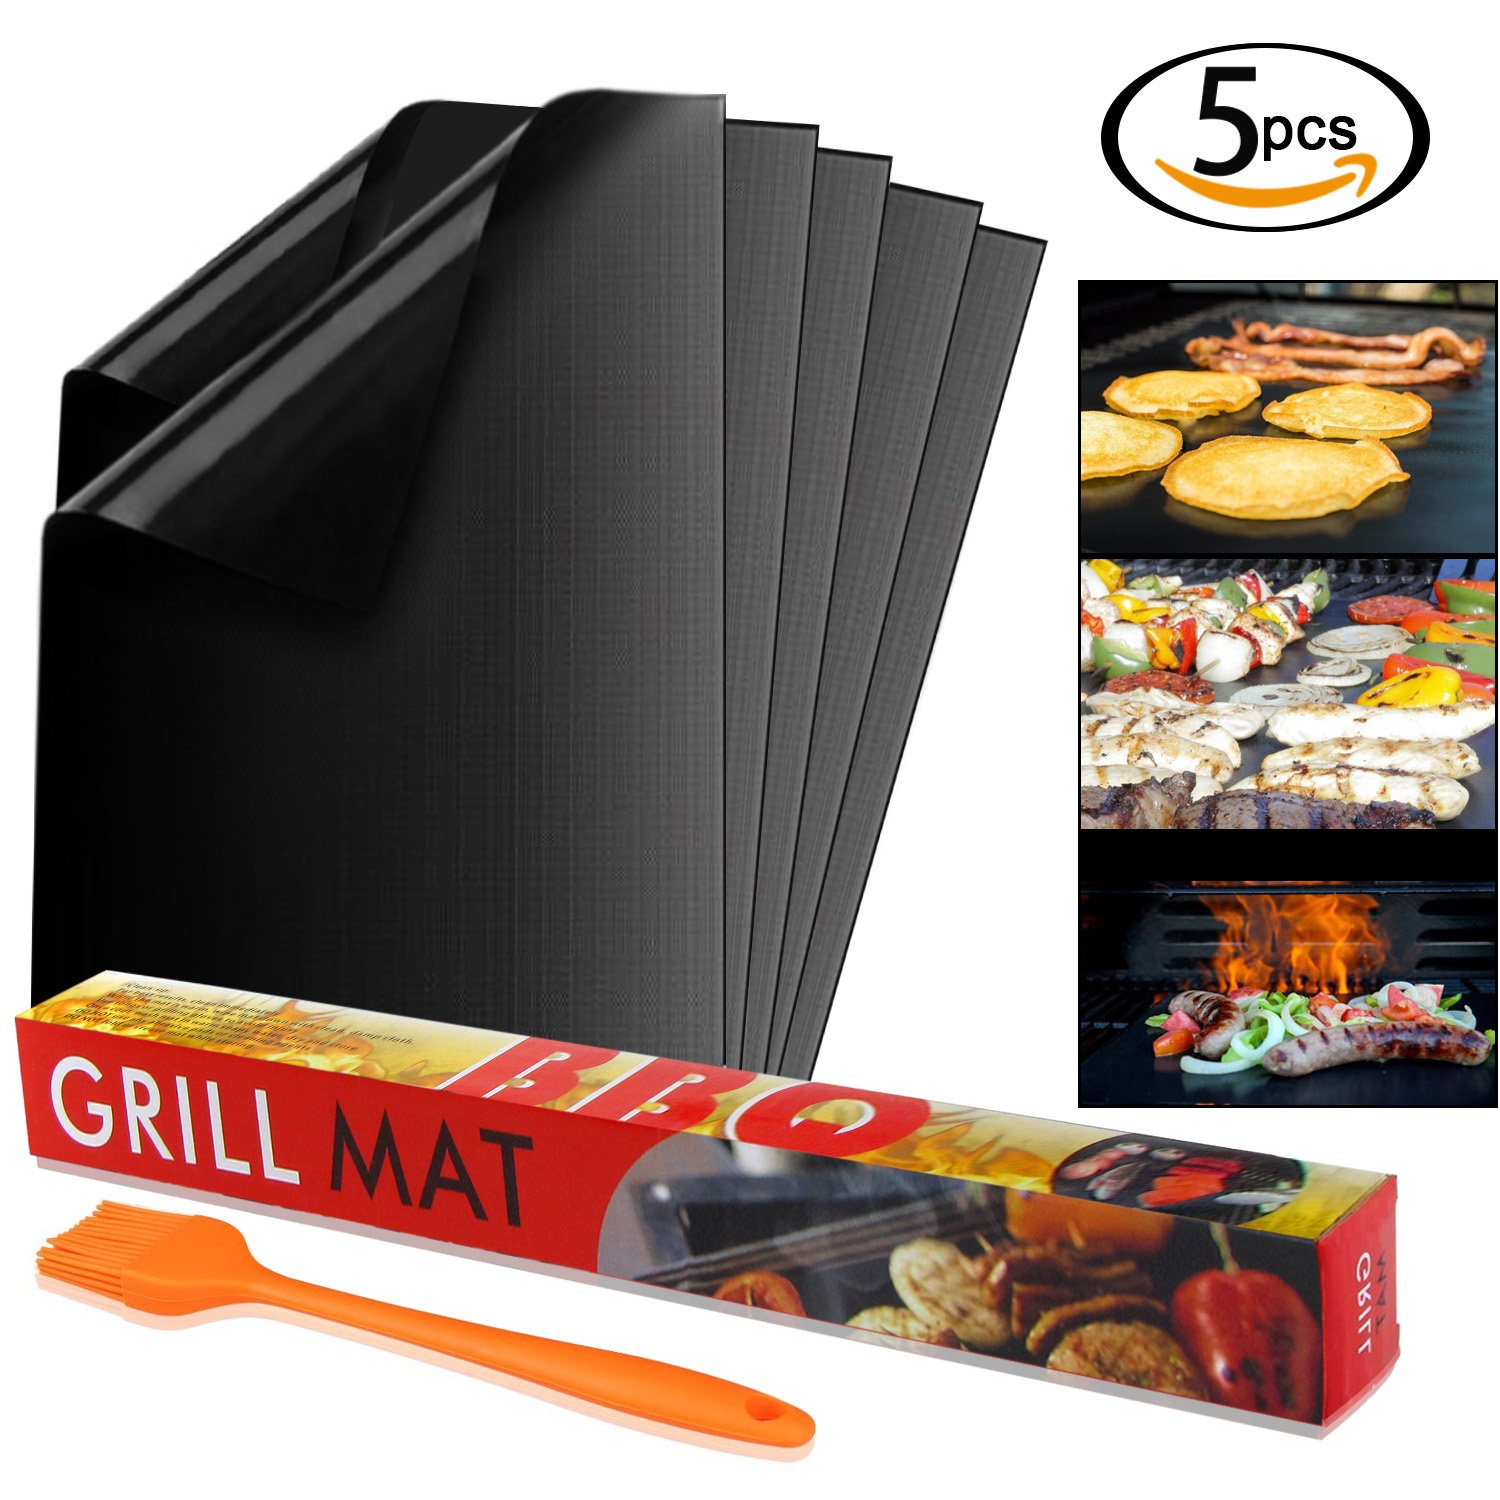 SunTop 5pcs BBQ Grill Mat Set,40cm*33cm Barbecue Sheets, Non Stick Oven Liner Teflon Cooking Mats - Reusable, Durable, Heat Resistantand, Easy to Clean, Barbecue Sheets For Grilling Meat, Veggies, Seafood, Eggs - Ideal for Charcoal Grill / Gas Grill / Elec